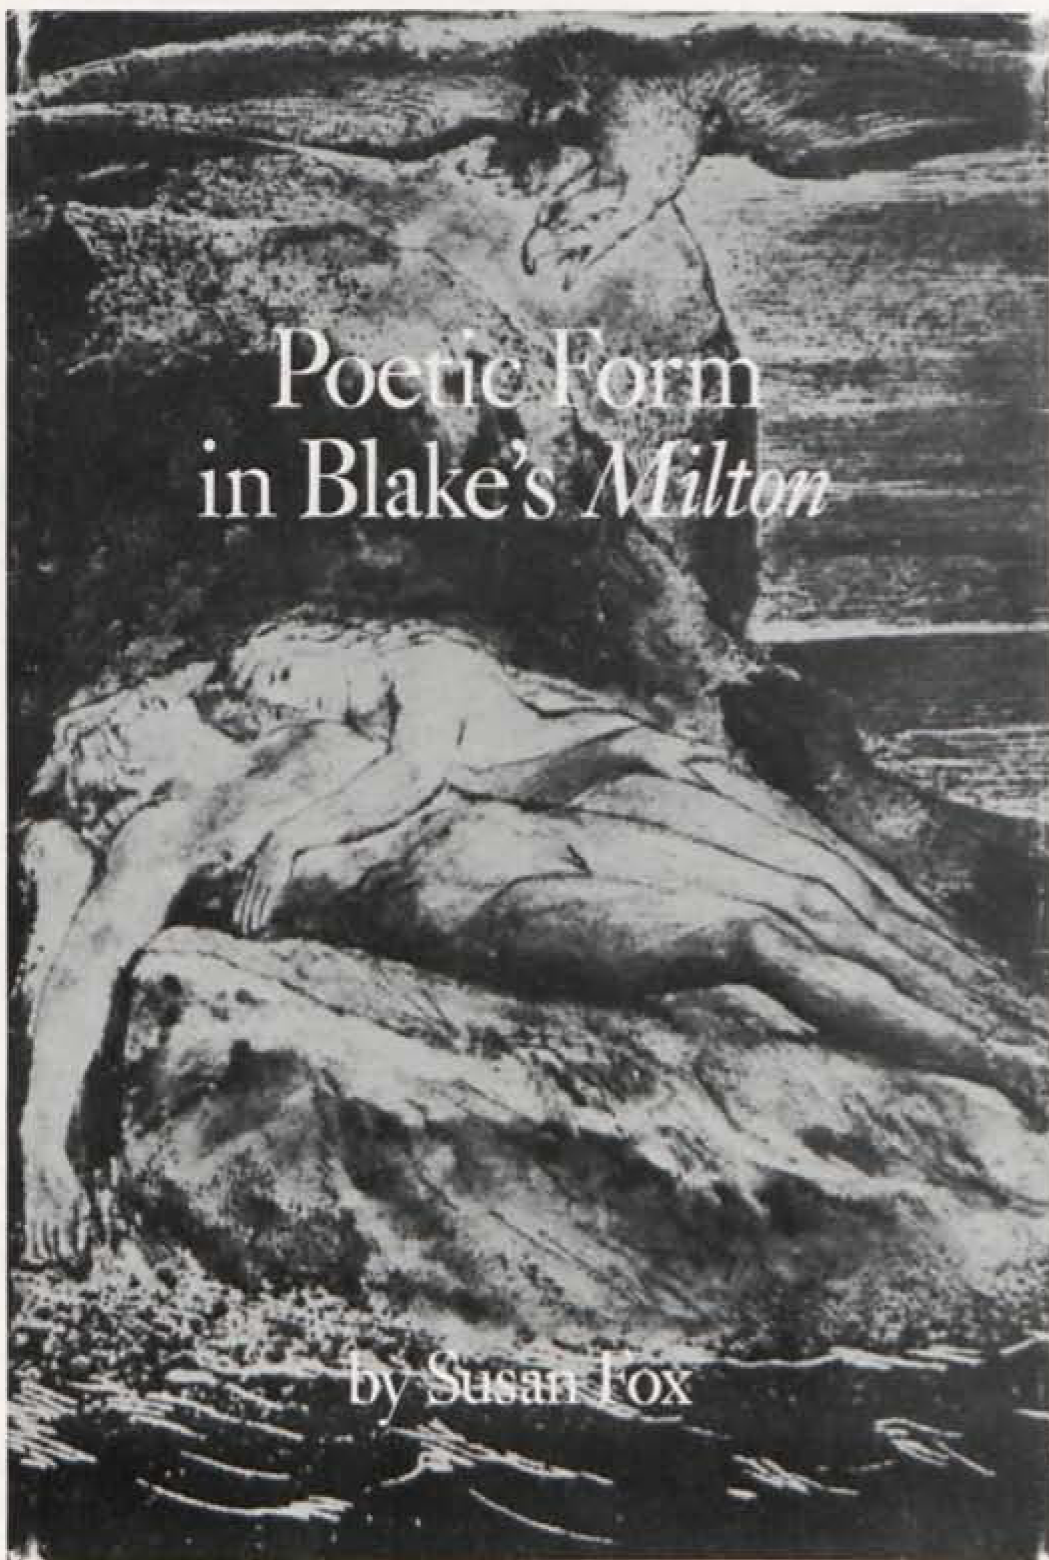 Poetic Form 	in Blake's Milton 	 	By Susan Fox